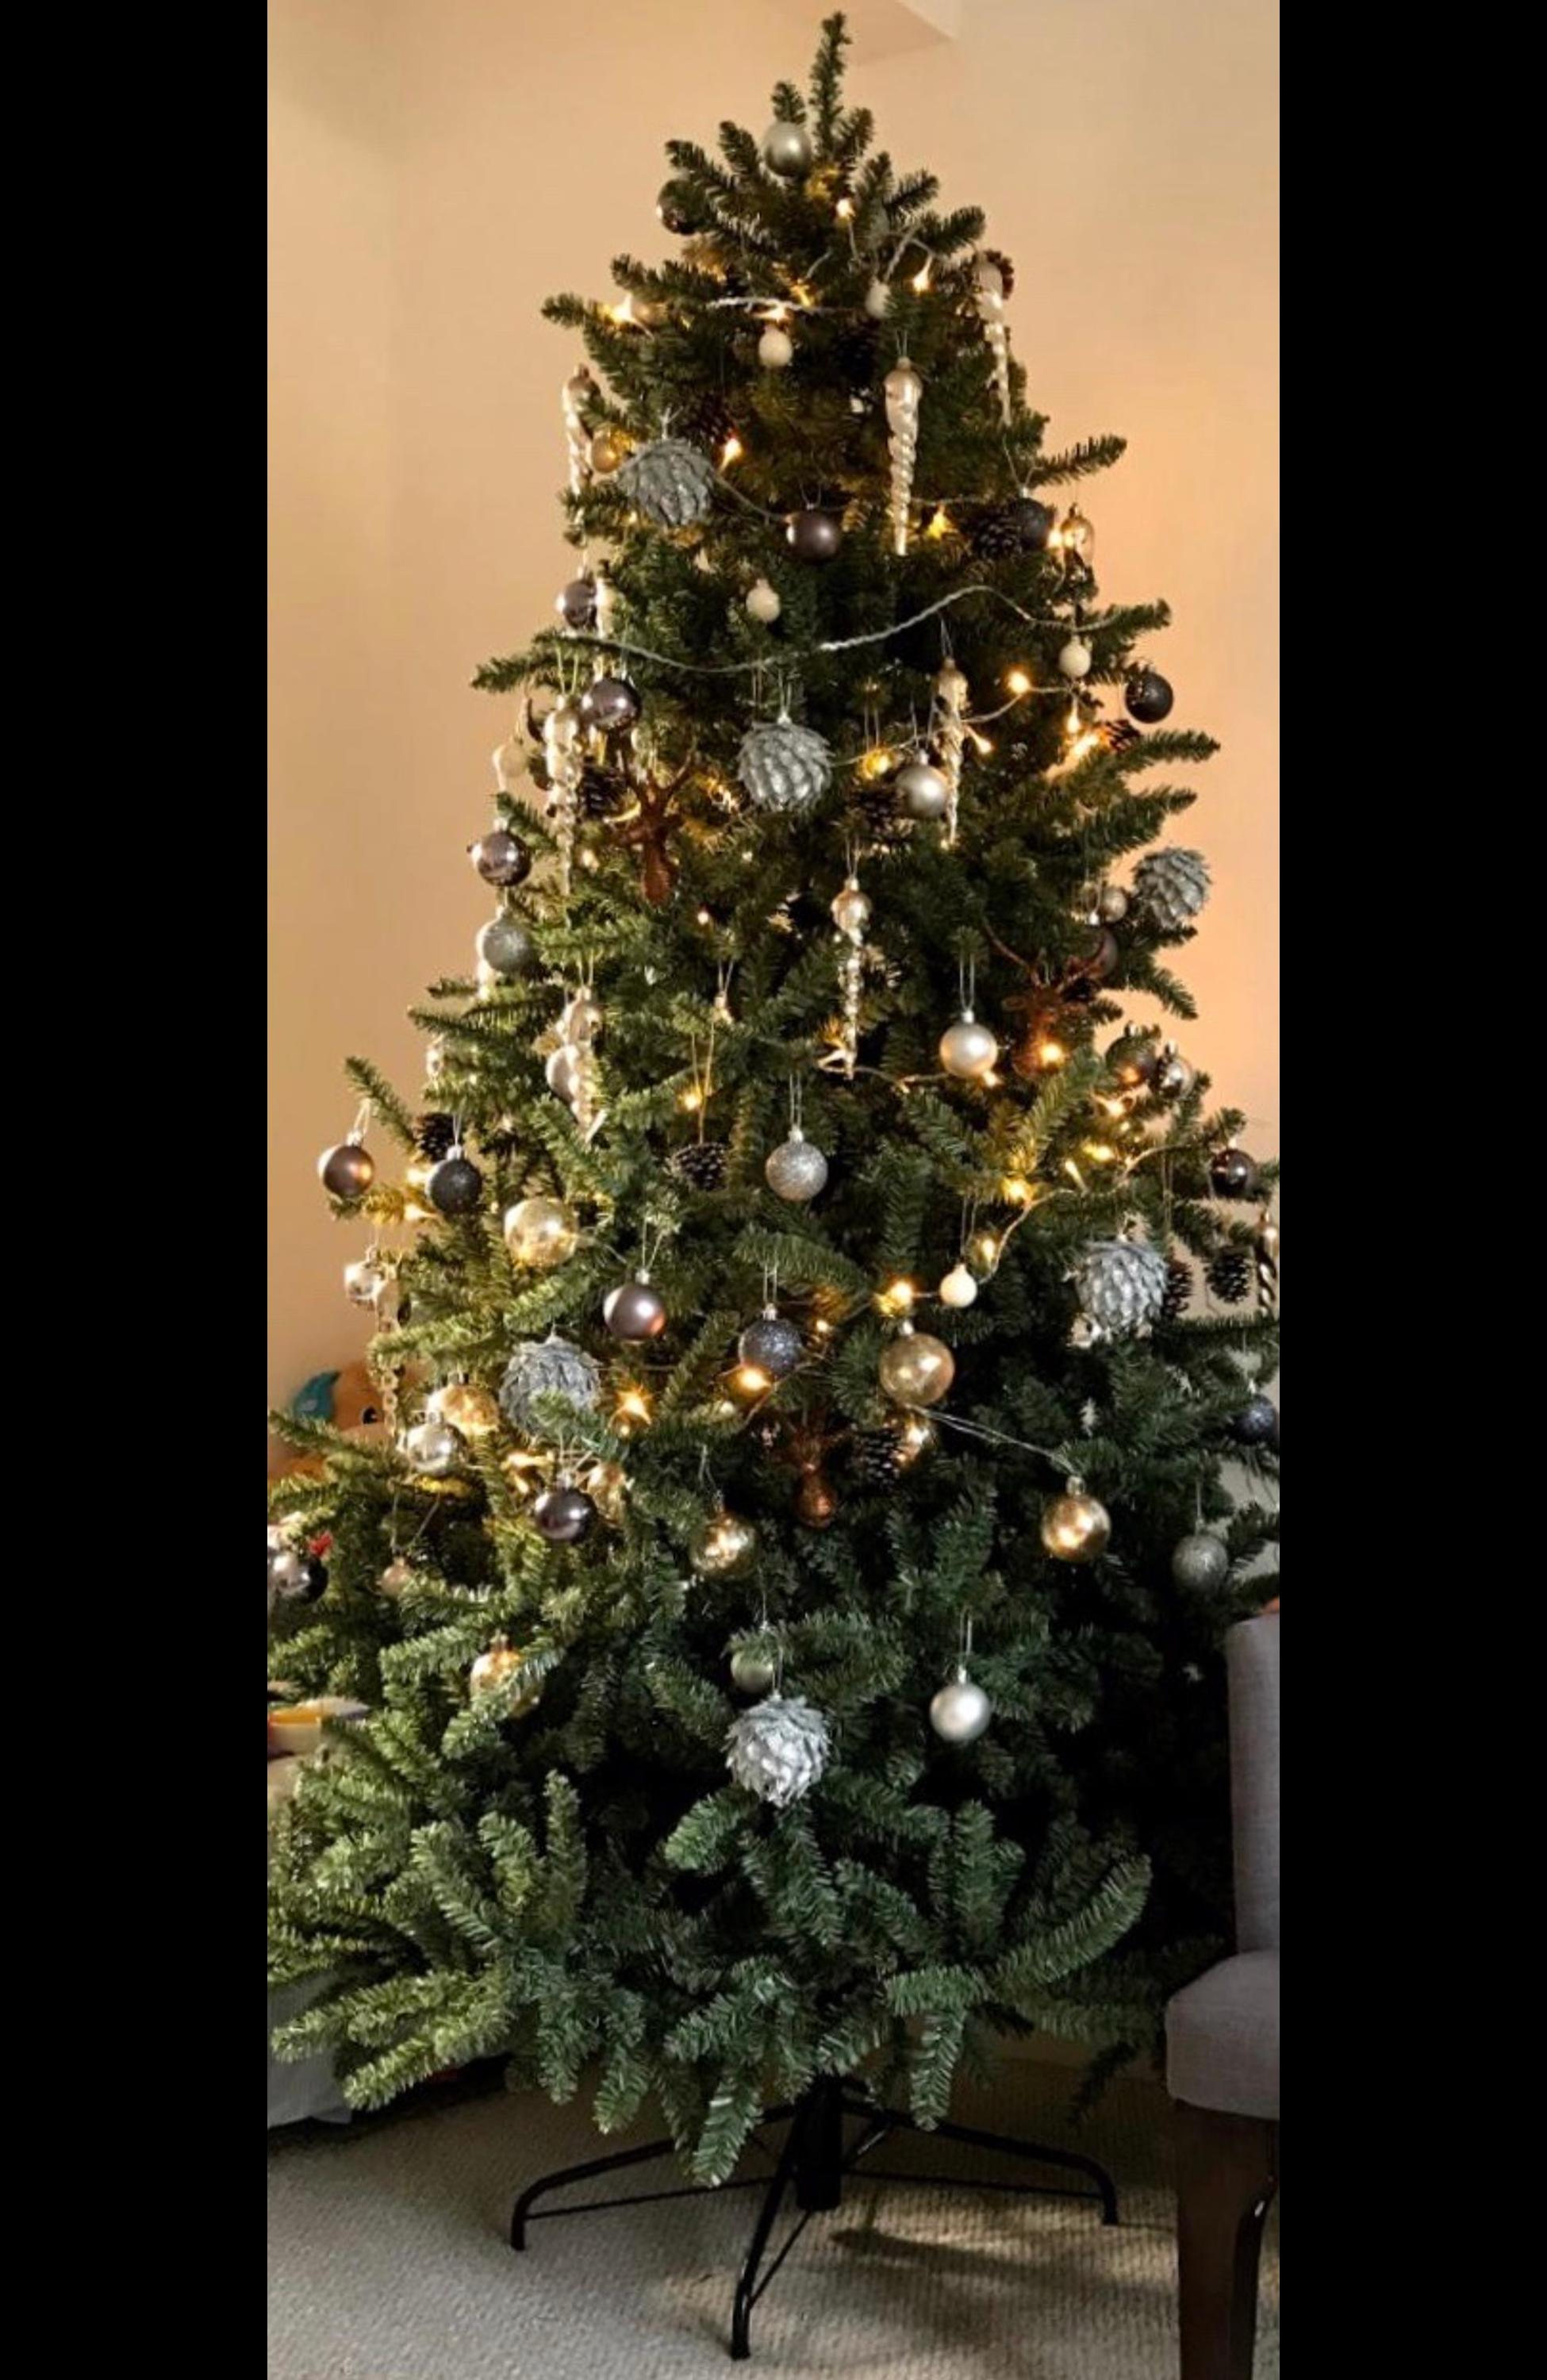 Christmas Tree - Canadian Blue Green Spruce in N10 Barnet for £100.00 for sale | Shpock